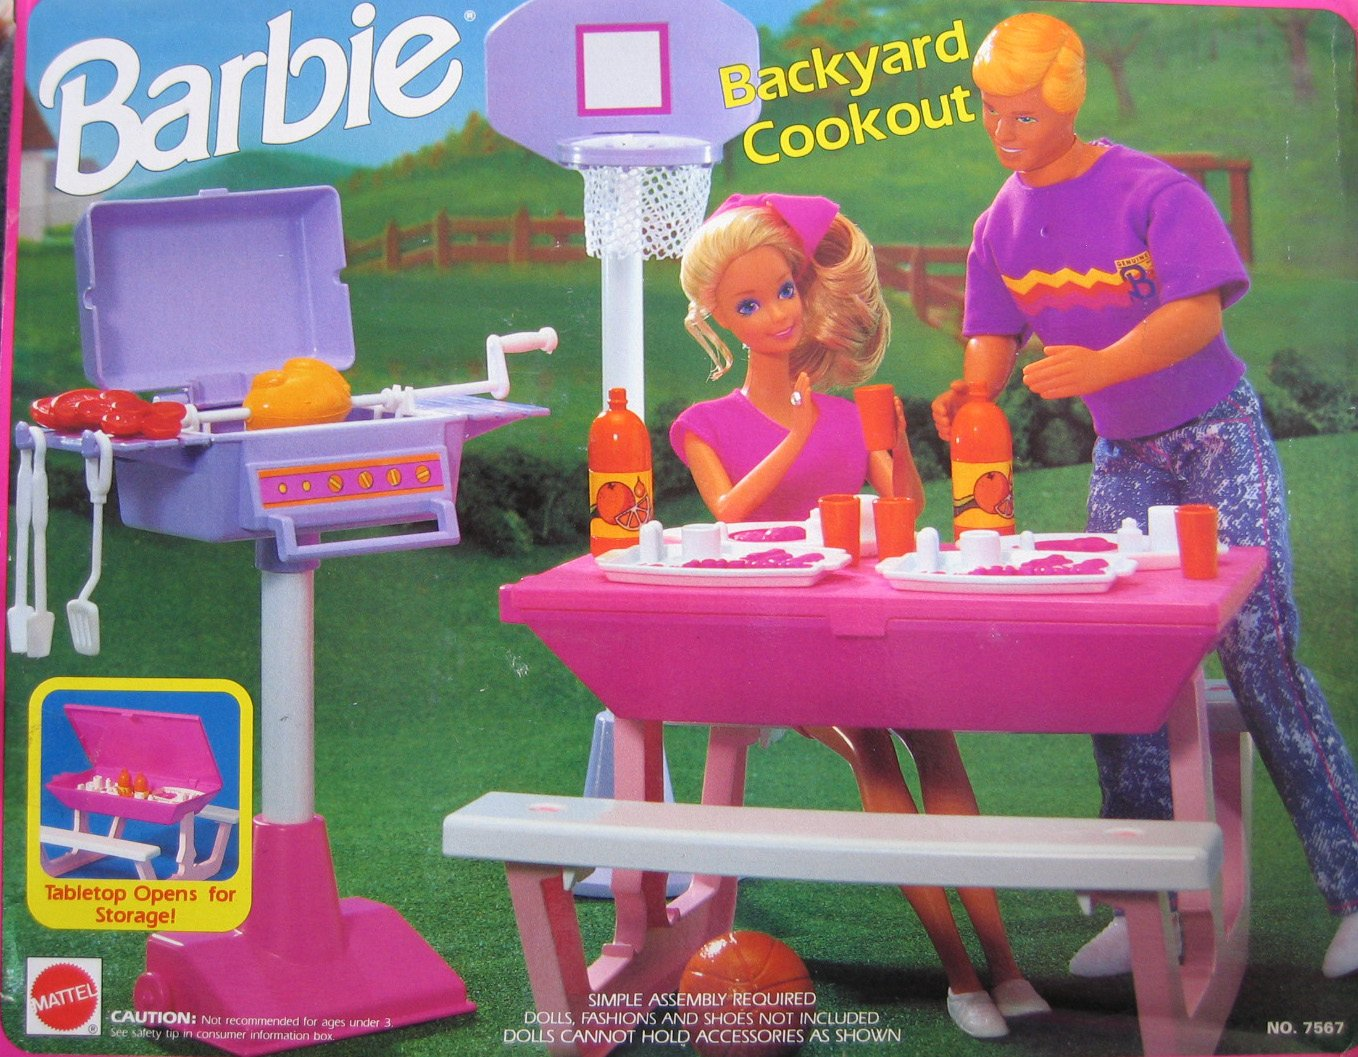 buy barbie backyard cookout playset back yard cook out w picnic